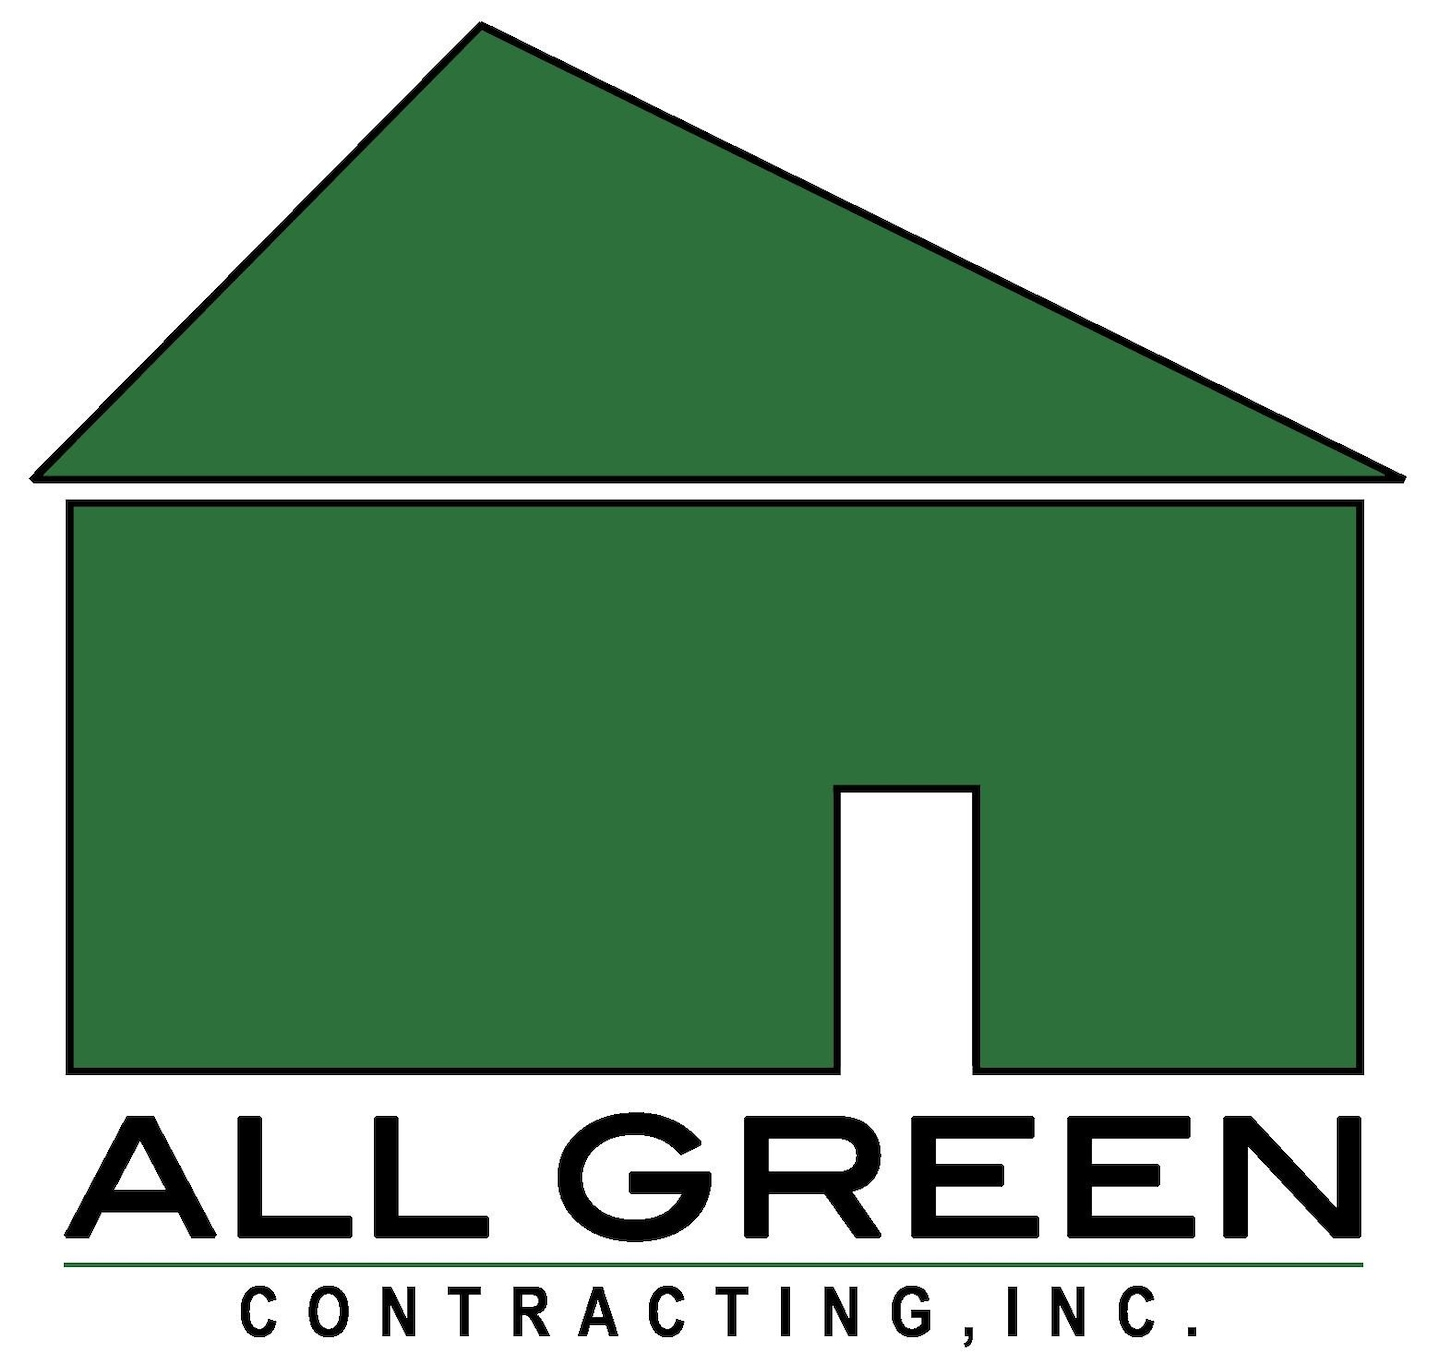 All Green Contracting, Inc.